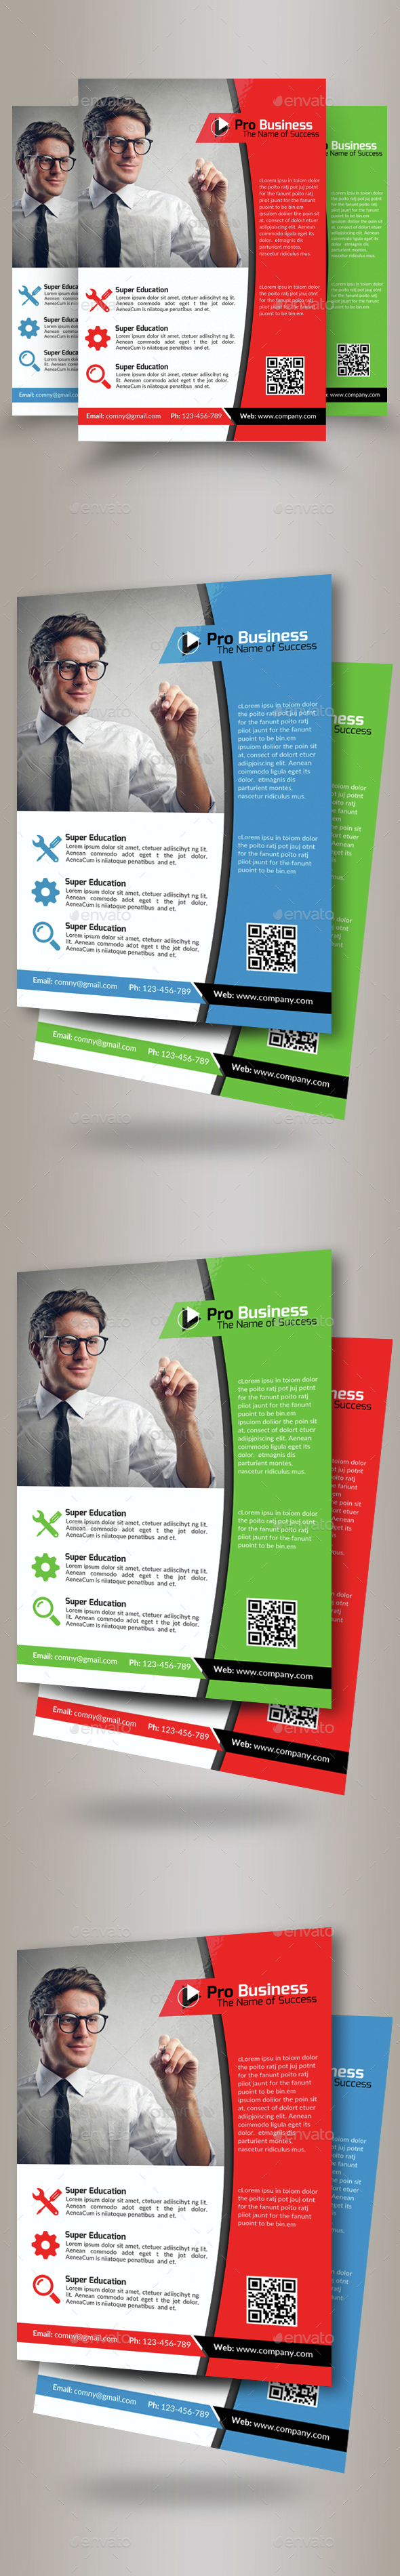 Human Resources Management Consulting Flyer - Corporate Flyers